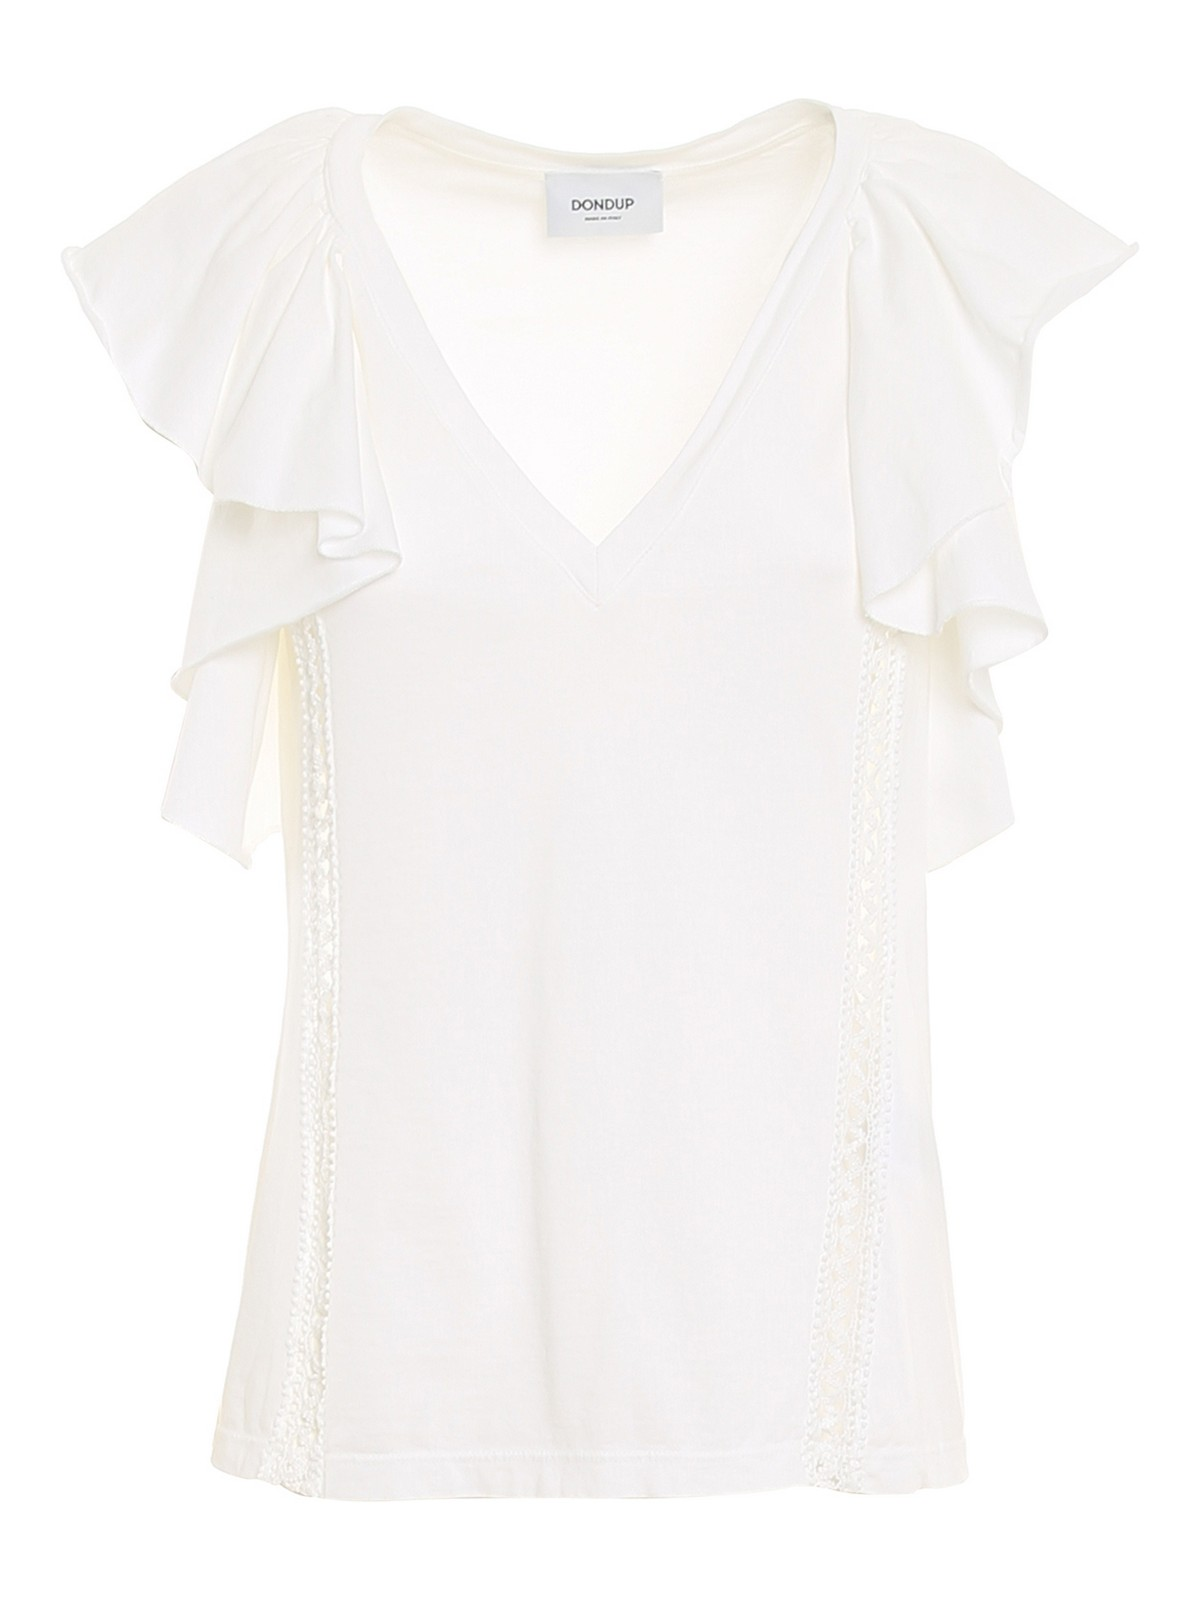 Dondup Cottons COTTON JERSEY TOP